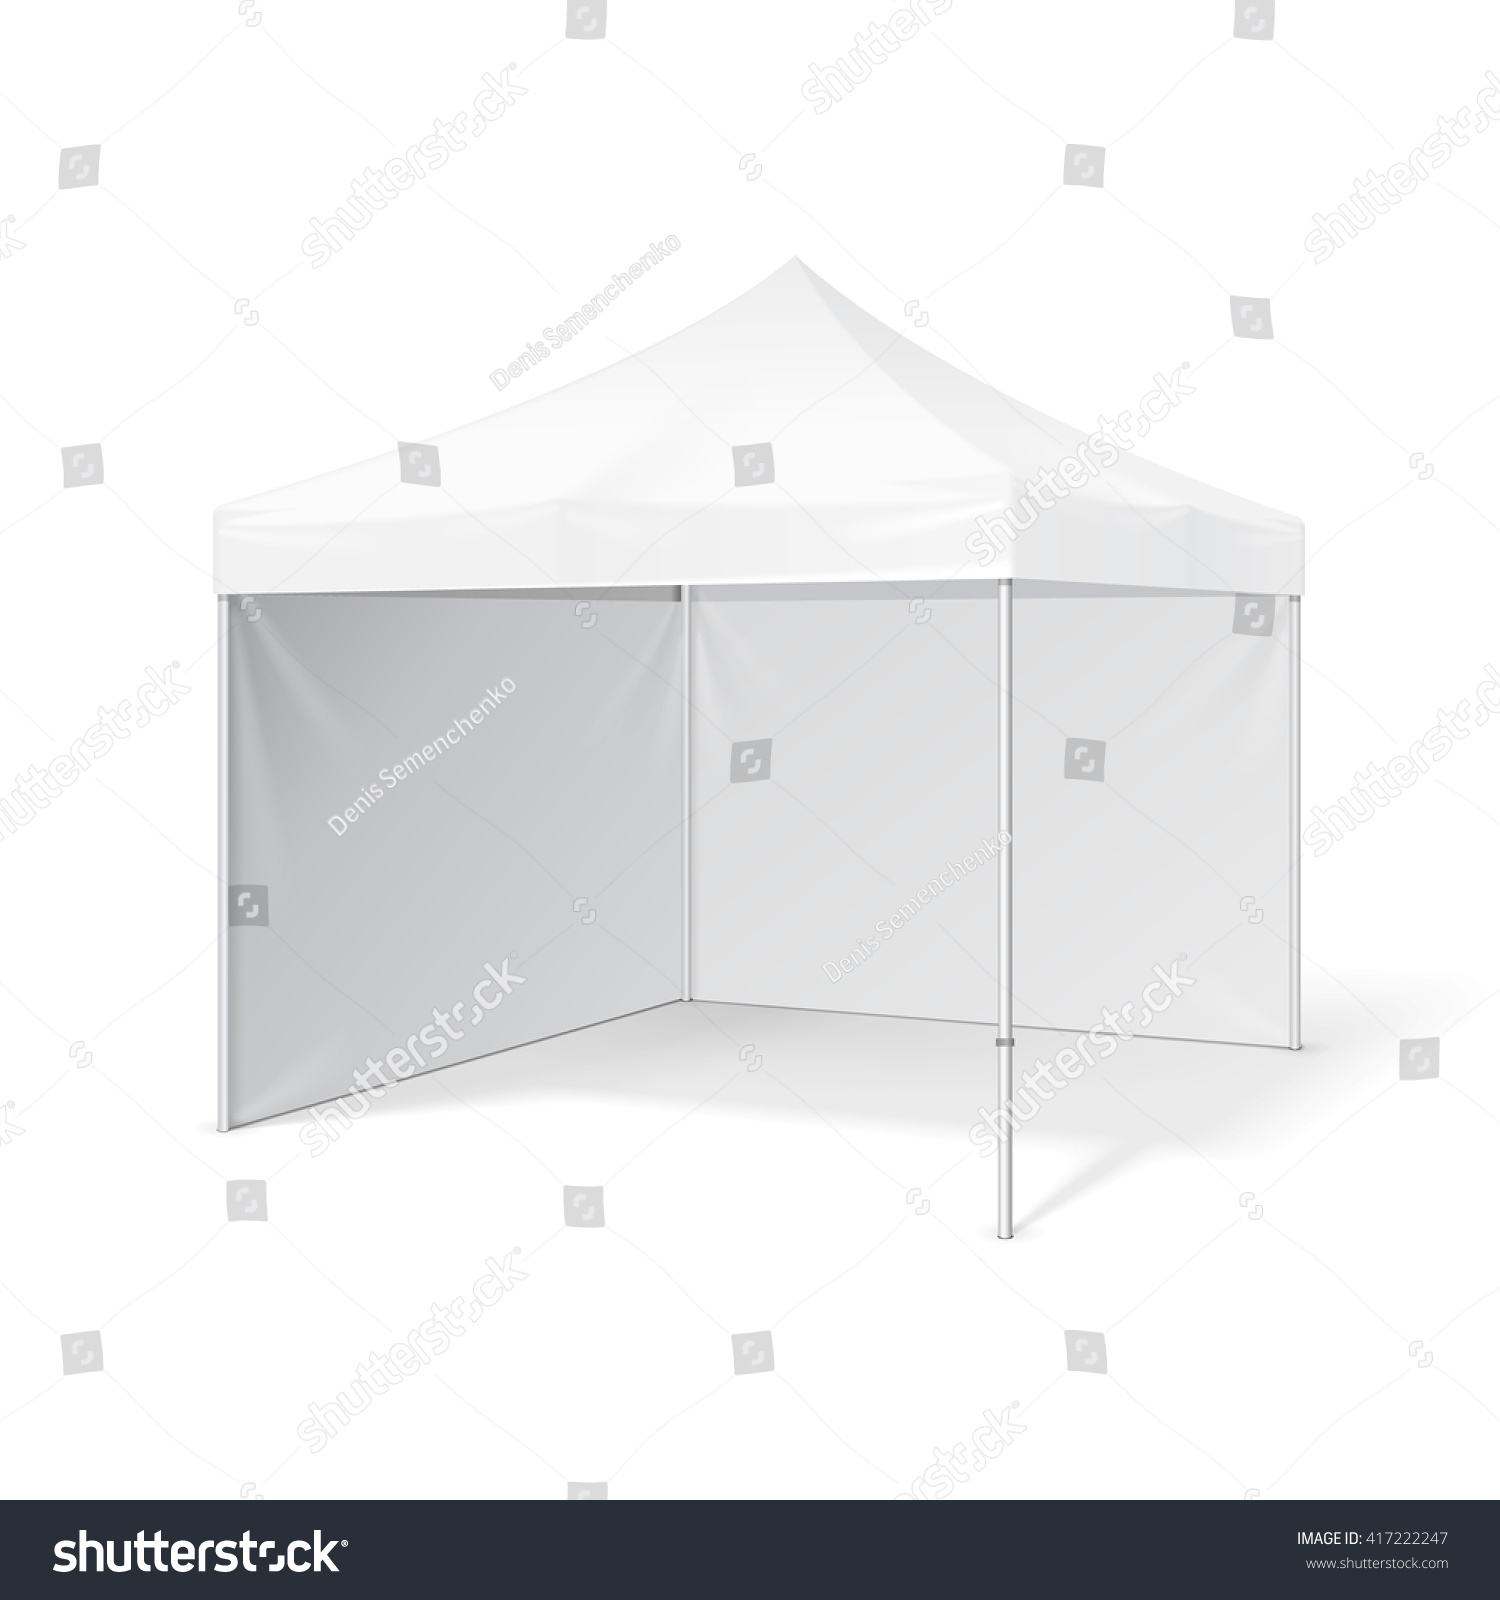 Pop Up Exhibition Stand Mockup Free : Promotional advertising outdoor event trade show stock